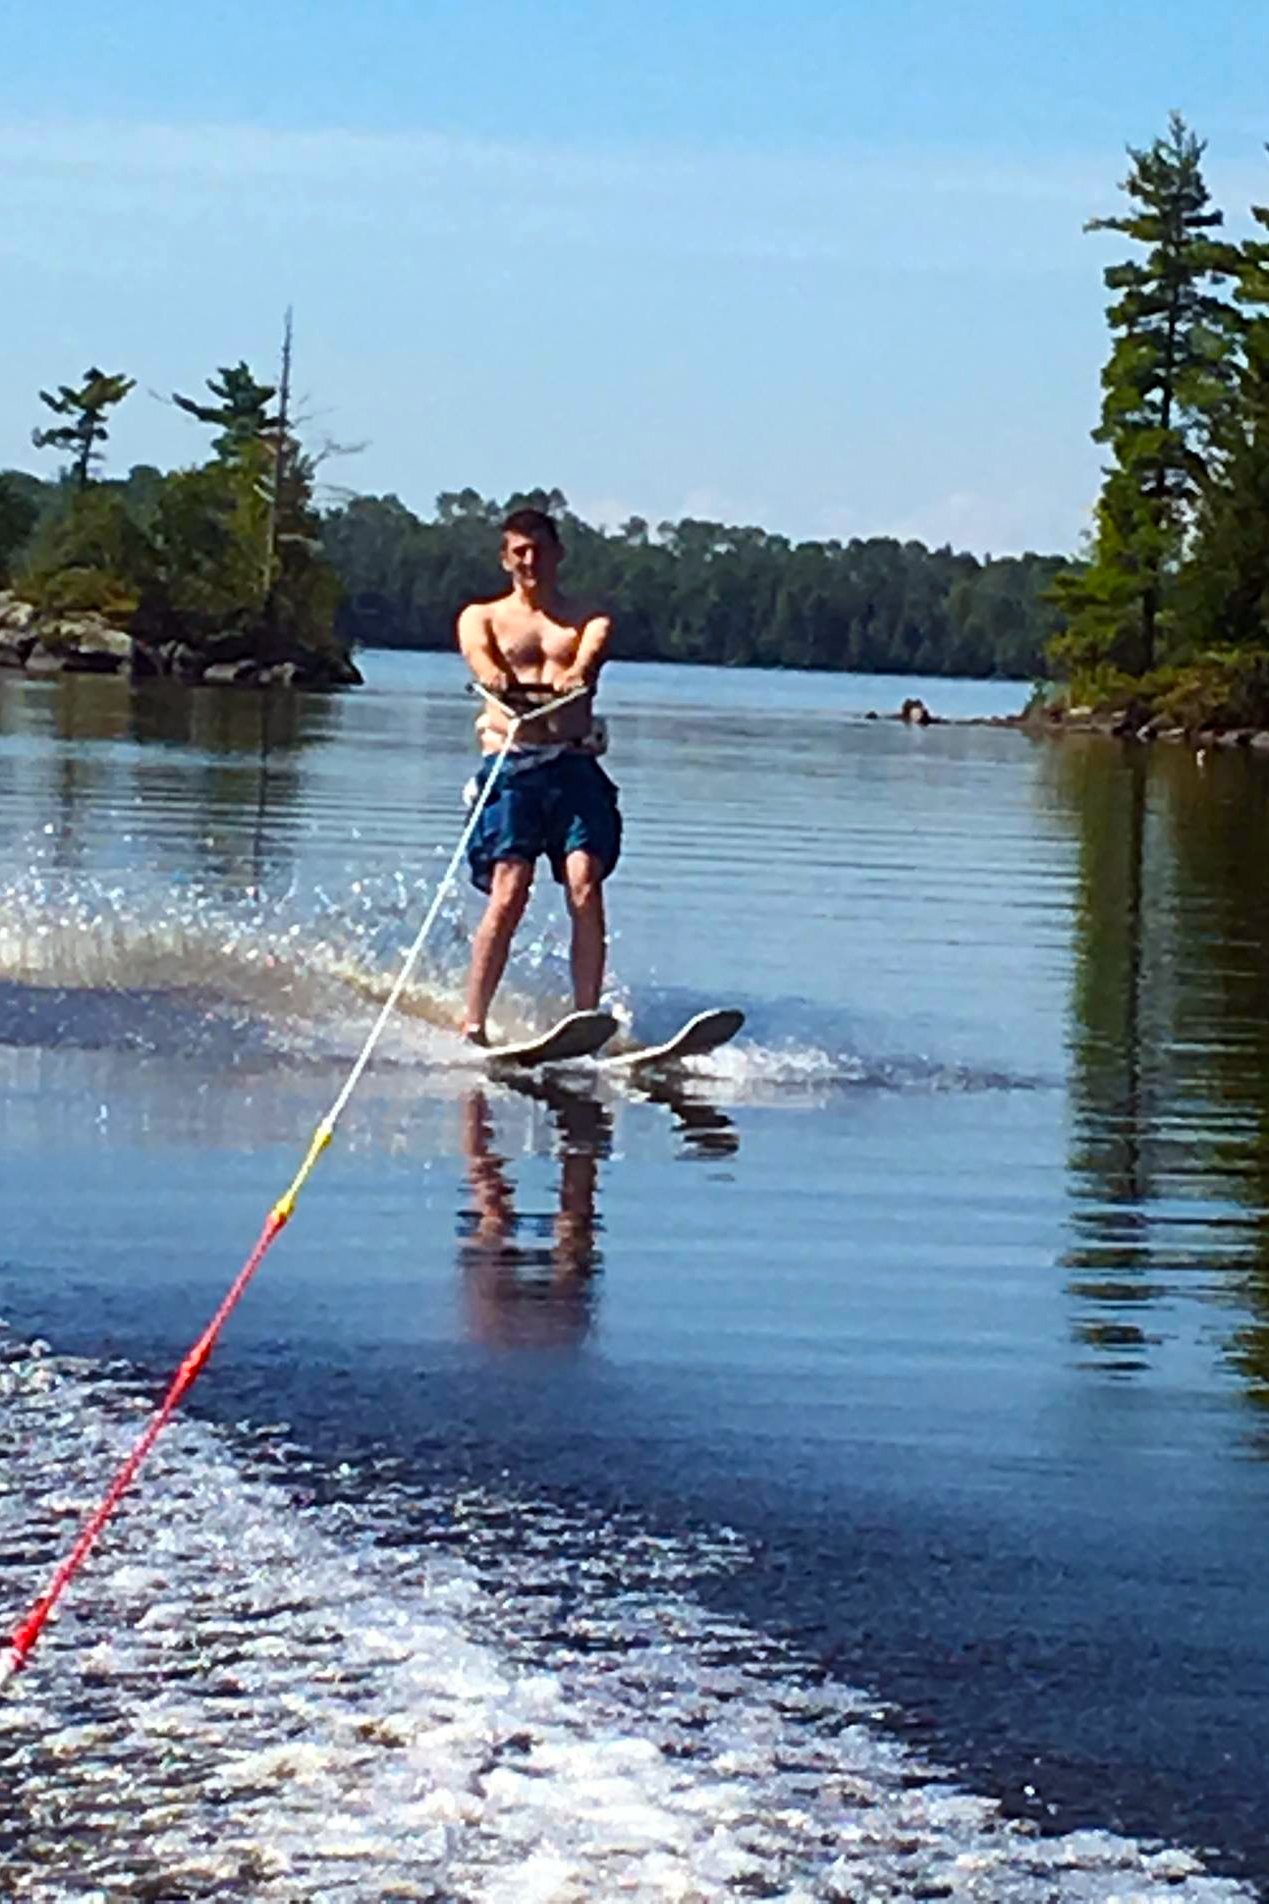 Skiing on Birch Lake